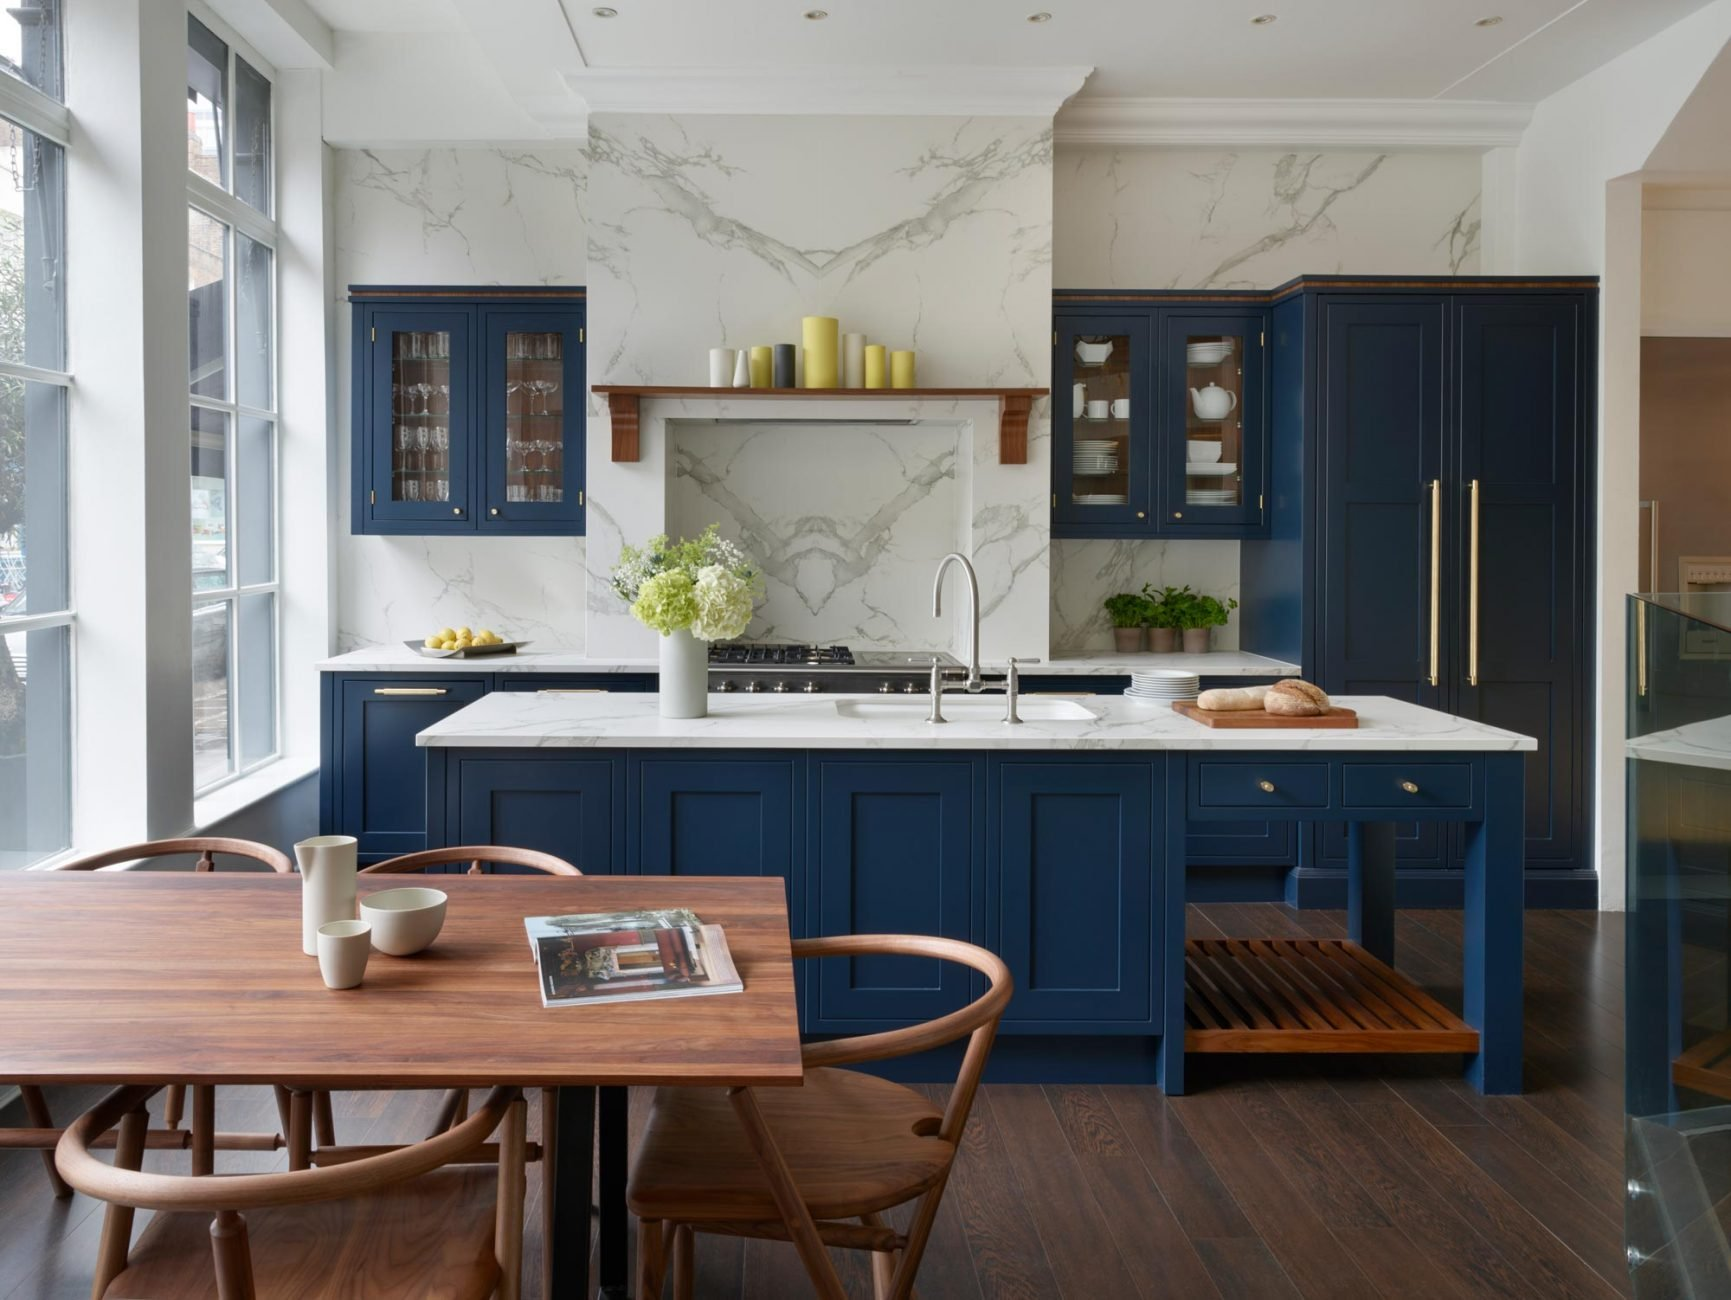 Dark blue kitchen units with quartz worktop and wooden dining table in foreground